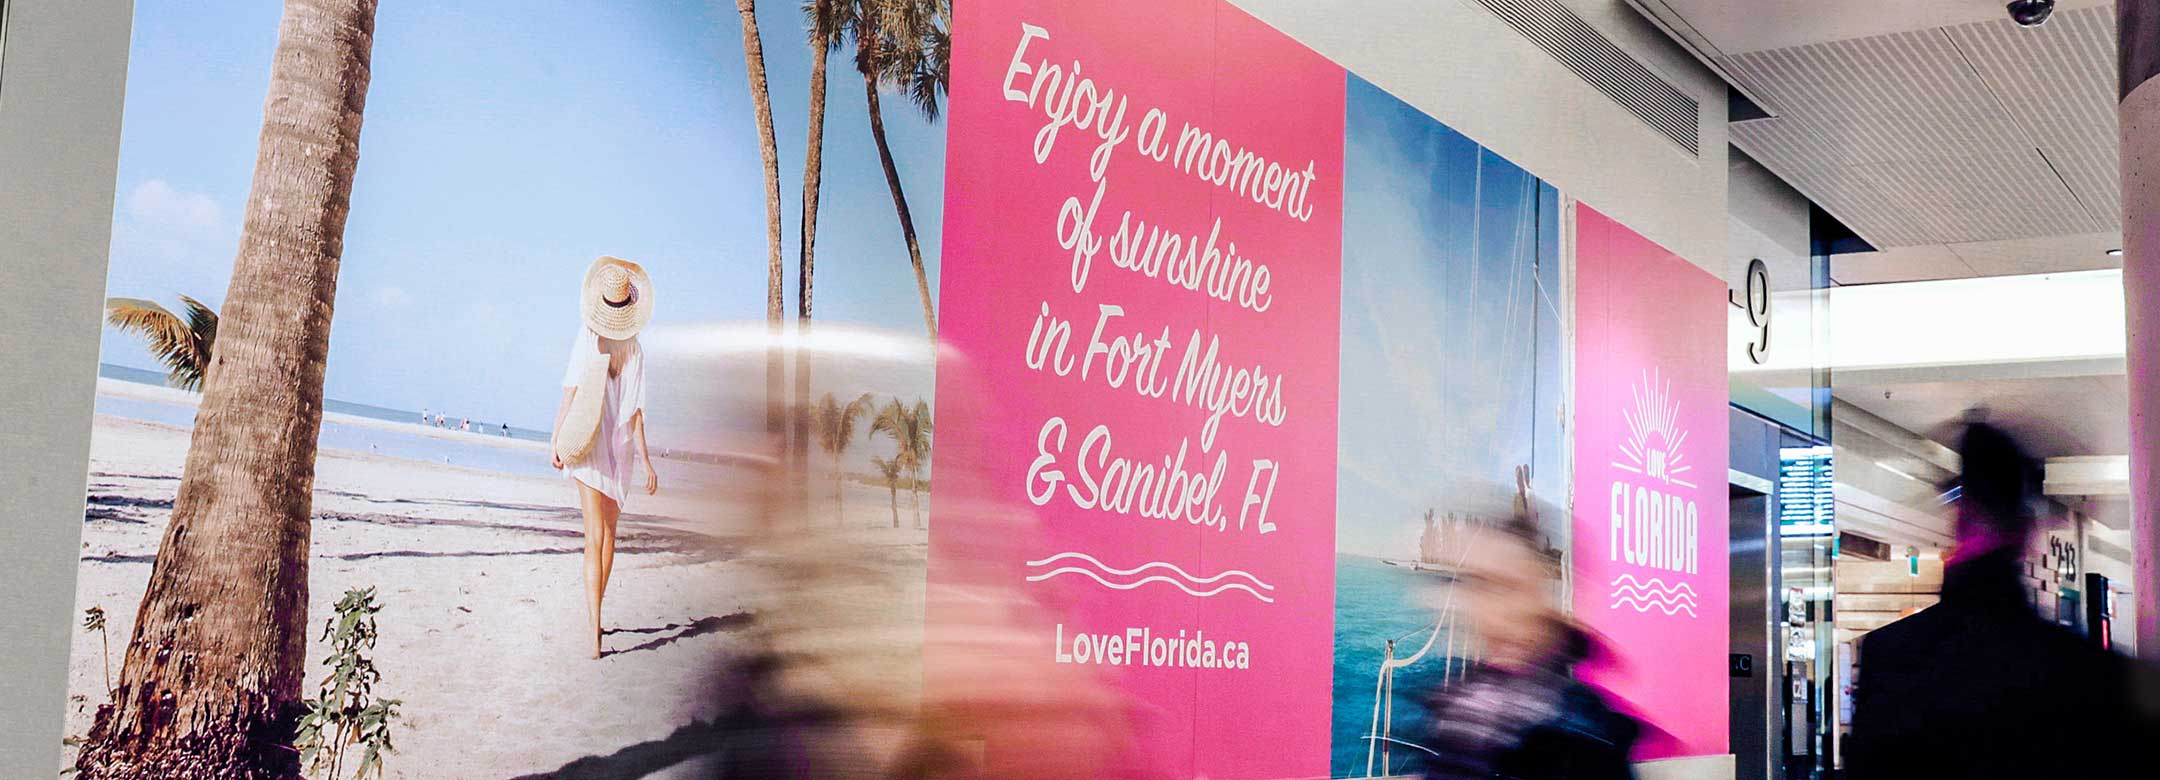 Florida Day in Canada's Integrated Marketing Campaign Creative Example - Train Station Banner